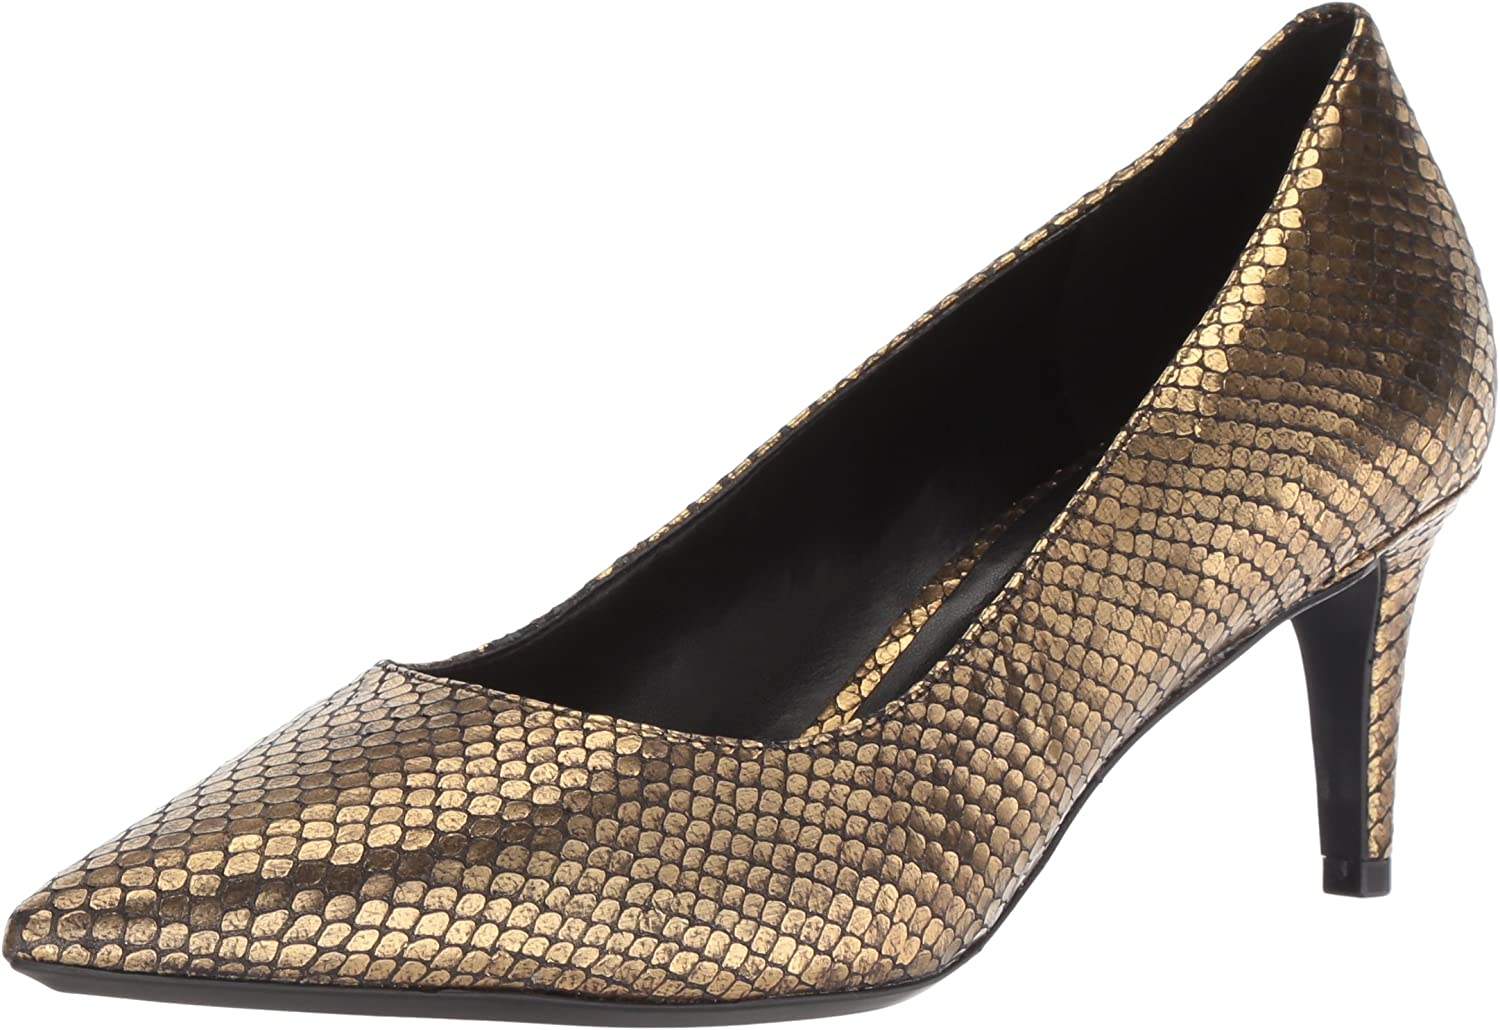 Nine West Womens Soho9x9 Metallic Pump